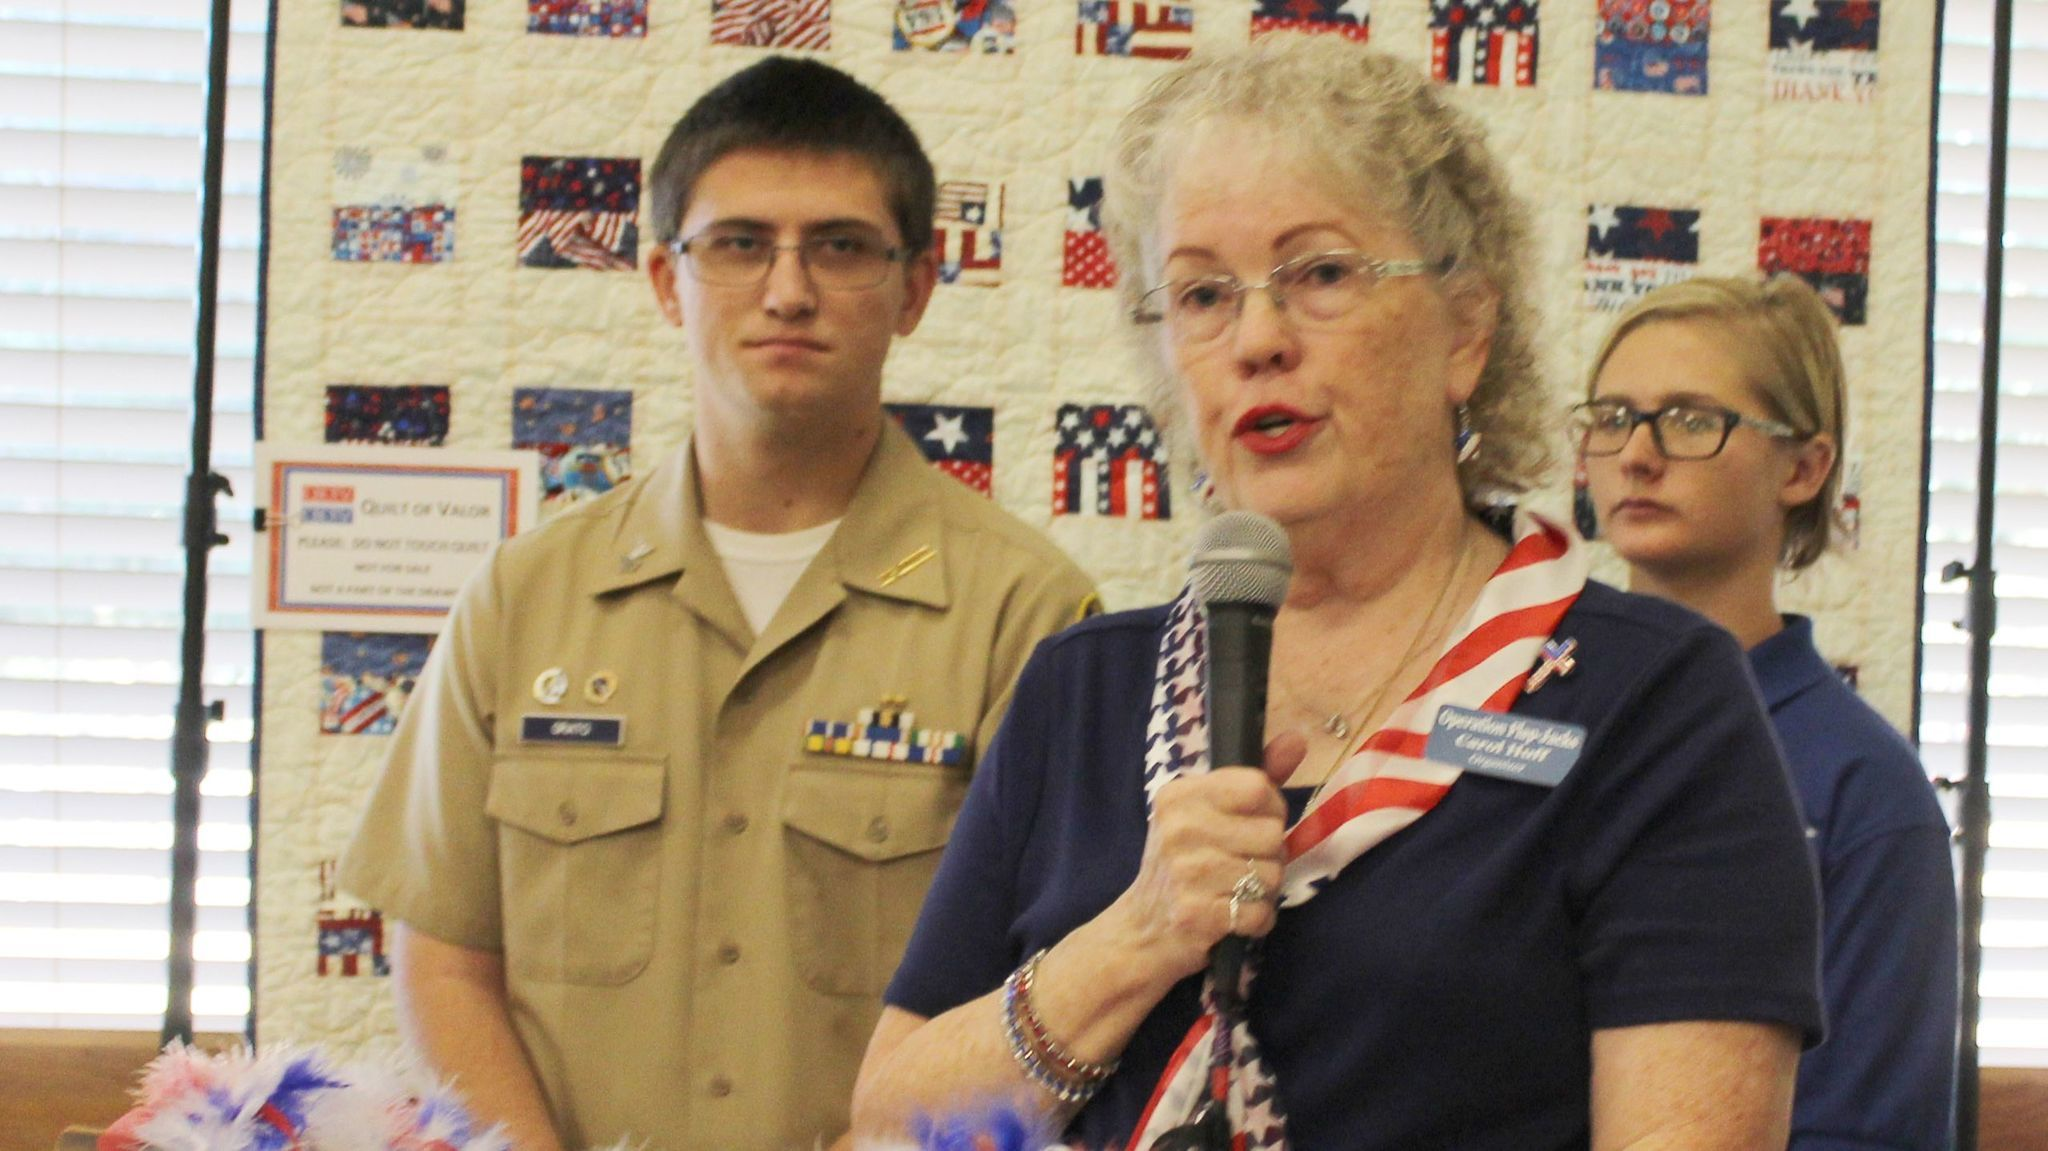 With the World War II veteran Bill Brown's Quilt of Valor in the background and NJROTC cadets Michael Grato and Victoria Leonard listening, Carol Huff explains the Quilts of Valor program.